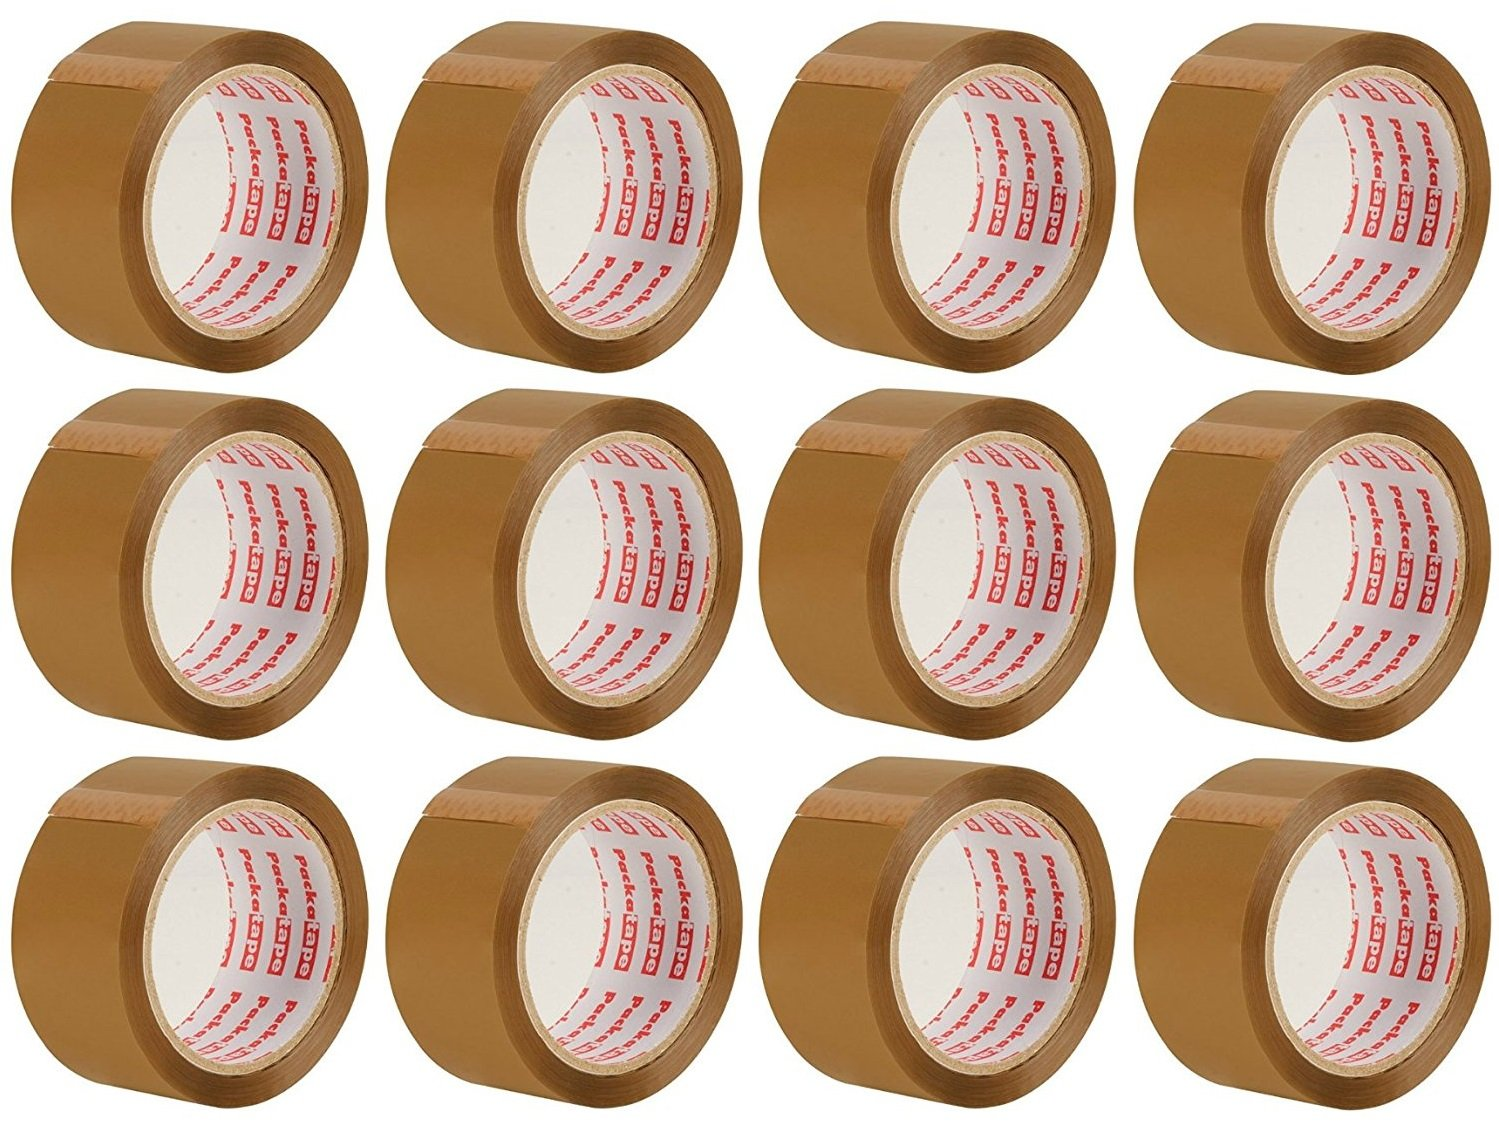 Packatape Brown Packaging Tape for Parcels and Boxes. This 12 roll pack of Heavy Duty Brown Packing Tape Provides a Strong, Secure and Sticky Seal for your Boxes - 12 Rolls 48MM x 66M